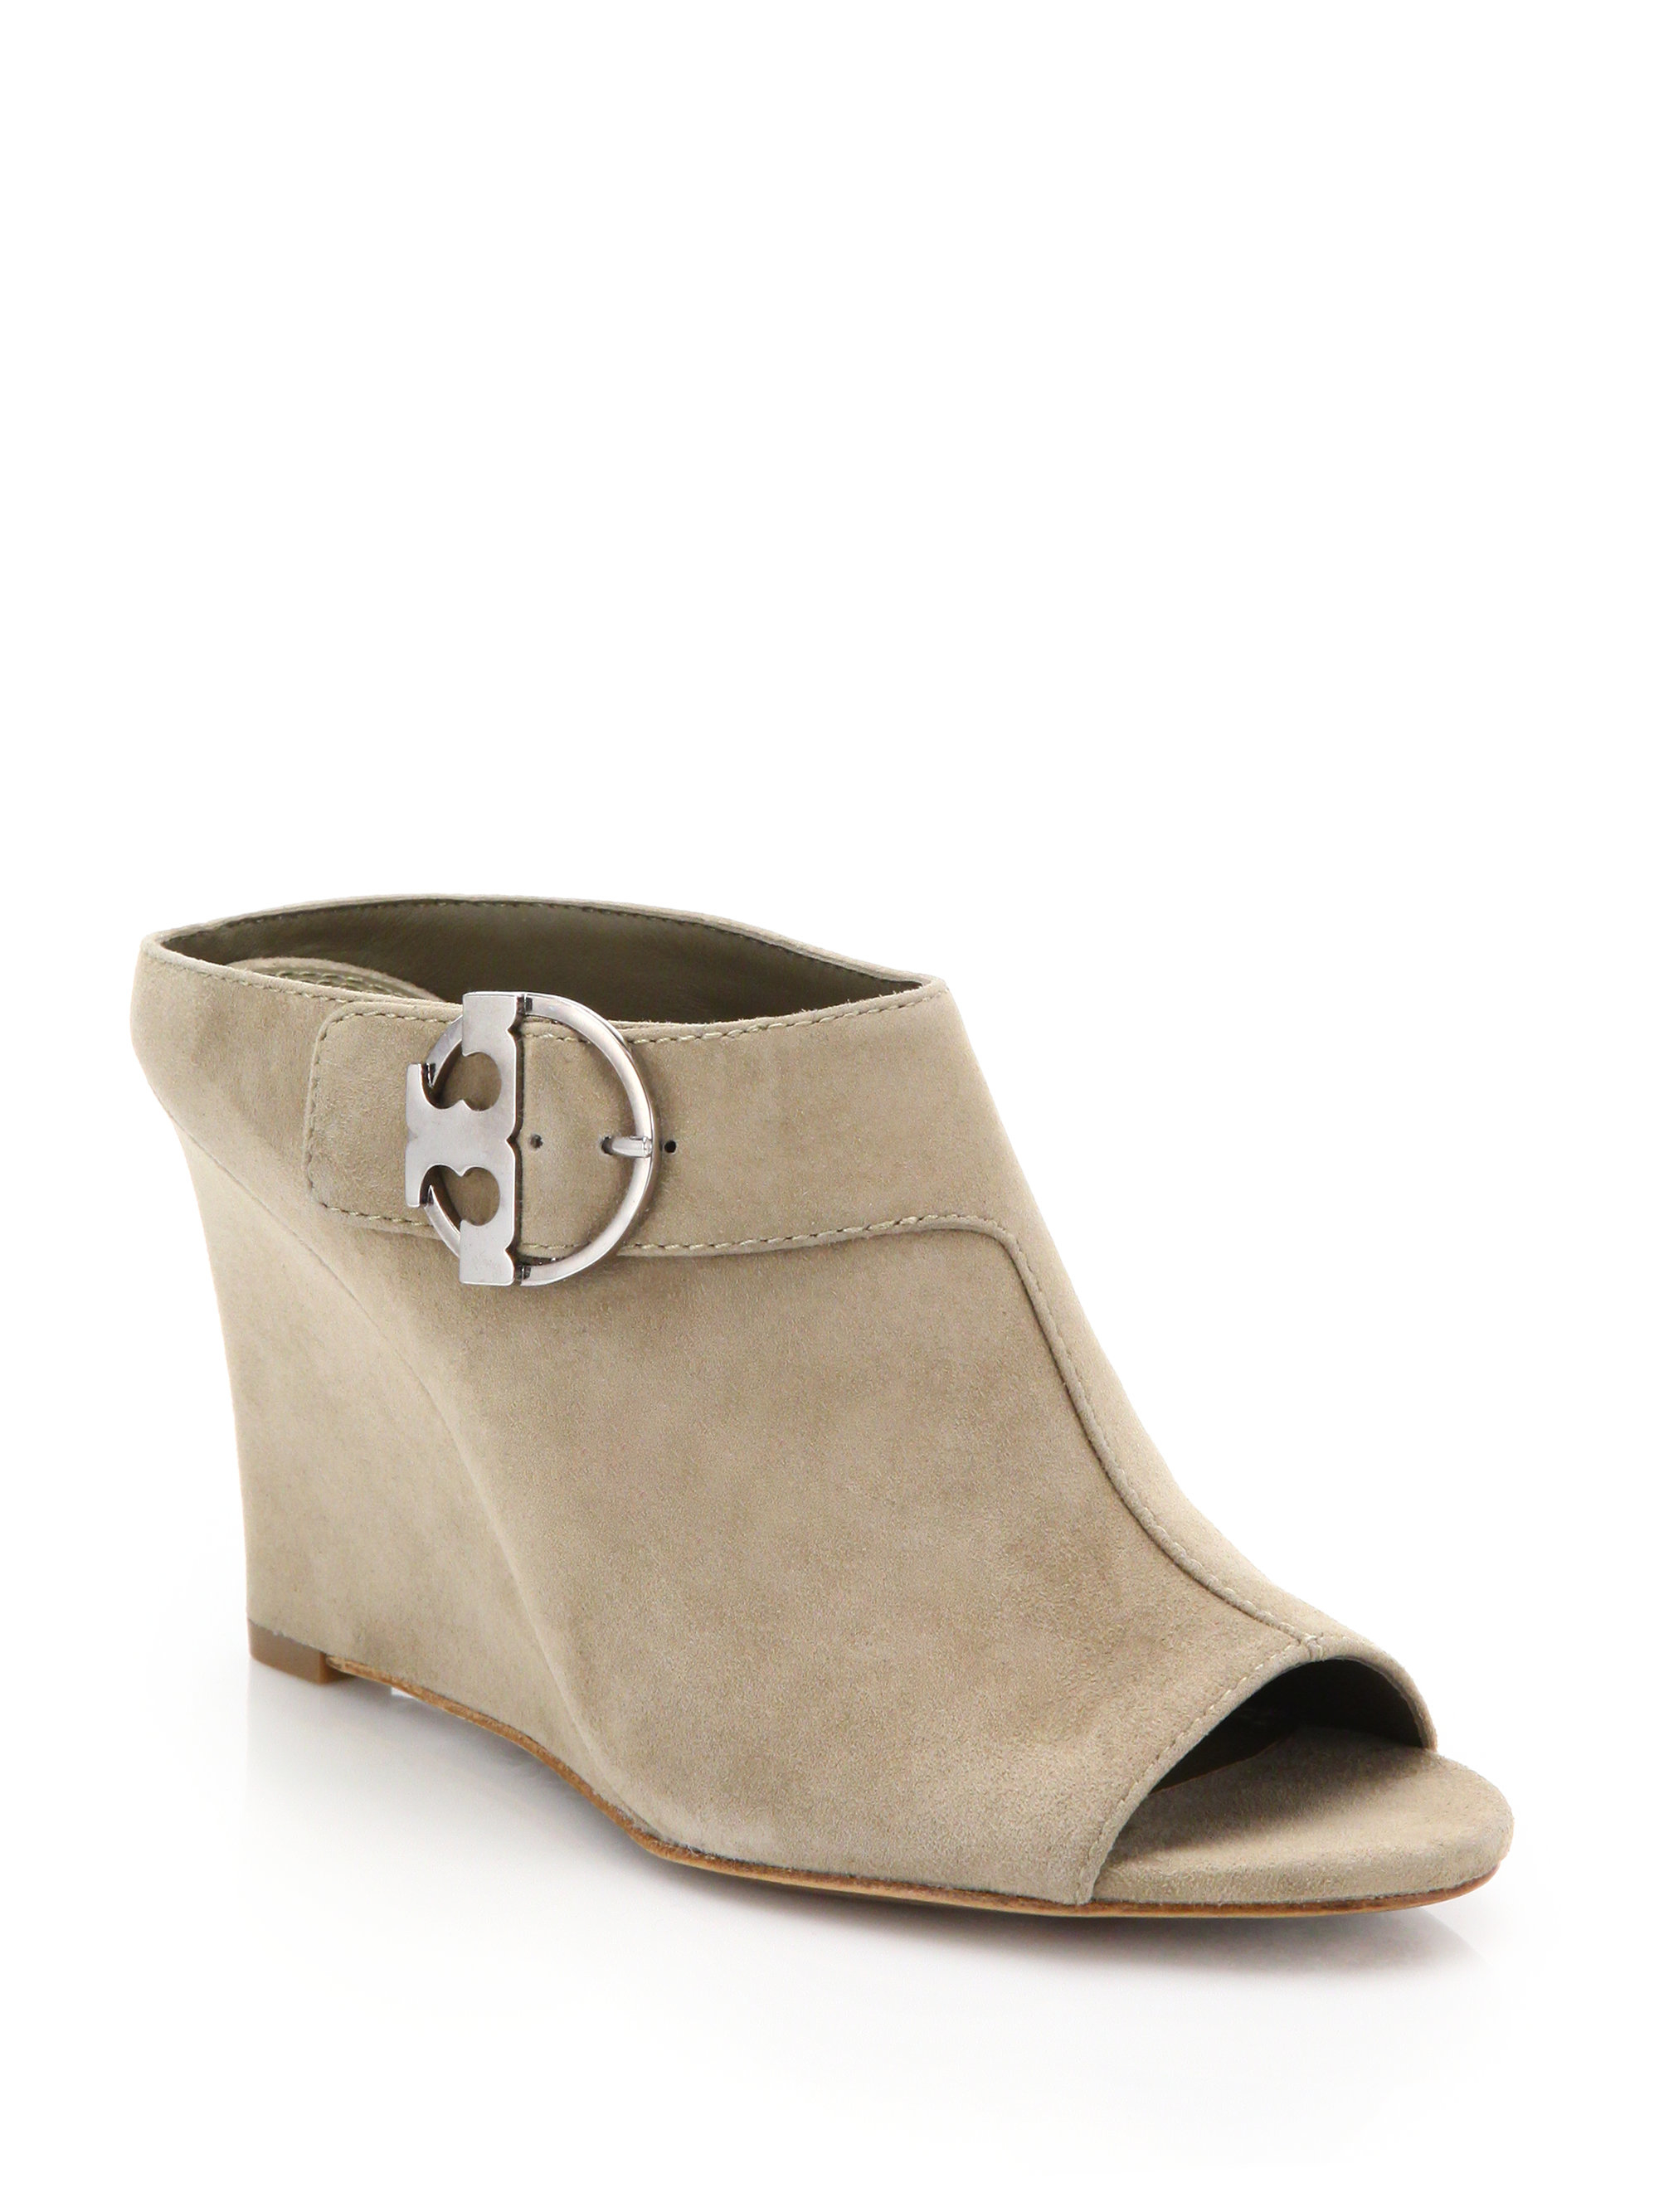 bc5594b8a6a3e0 Lyst - Tory Burch Thames Suede Wedge Mule Sandals in Natural